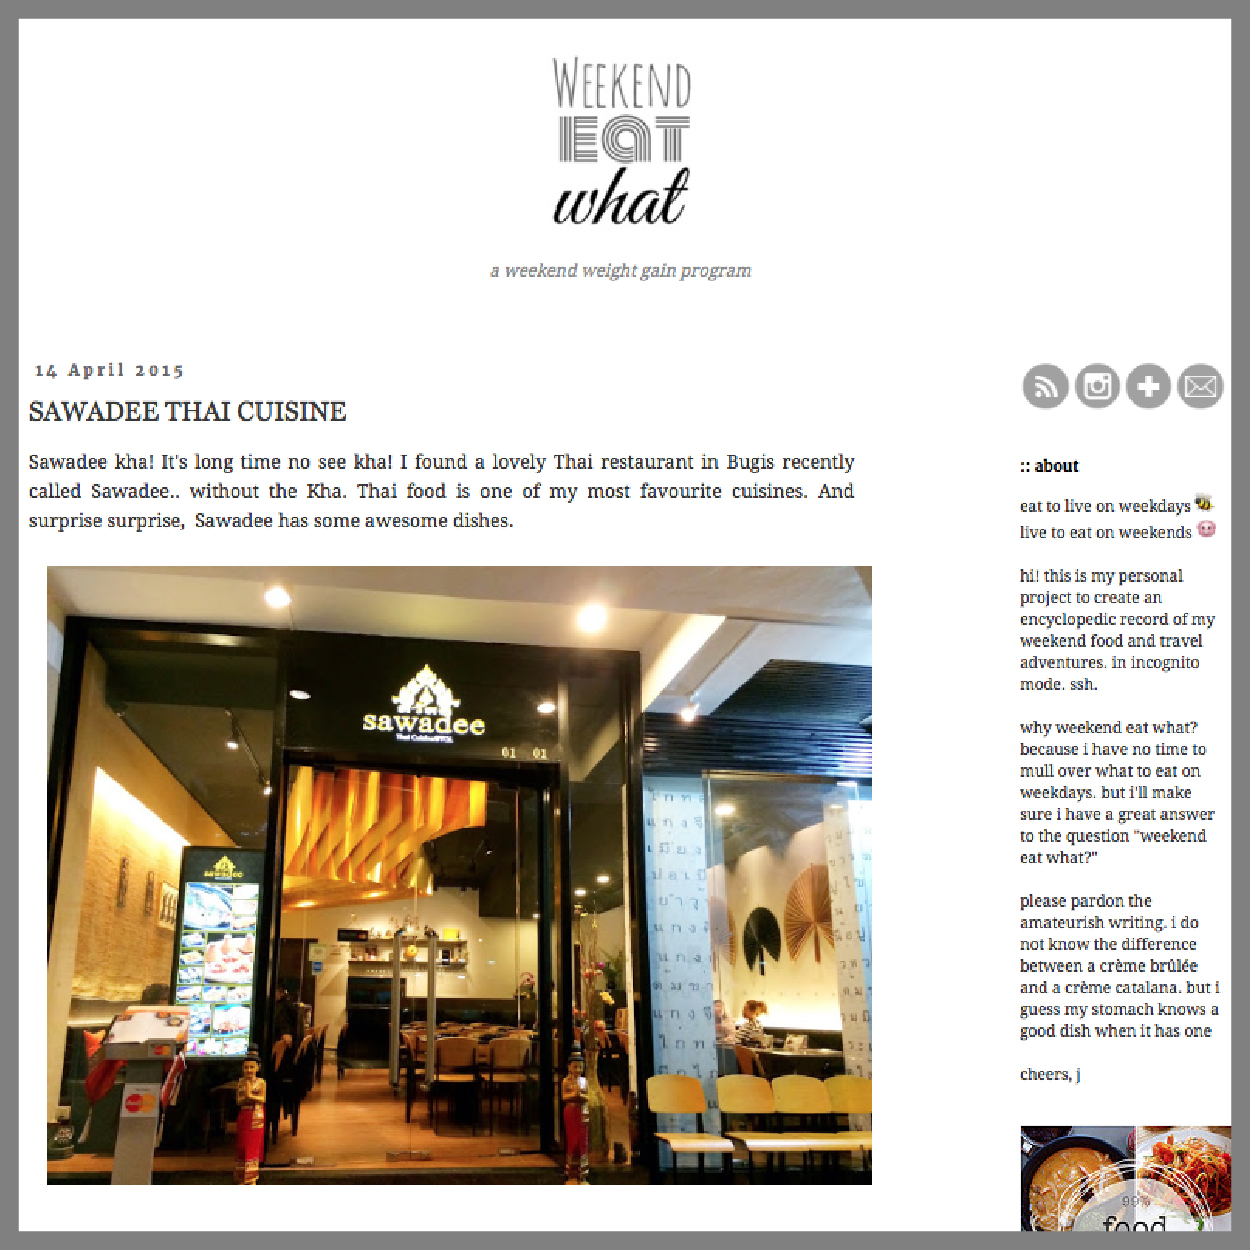 Weekend Eat What SAWADEE THAI CUISINE, 14 April 2015